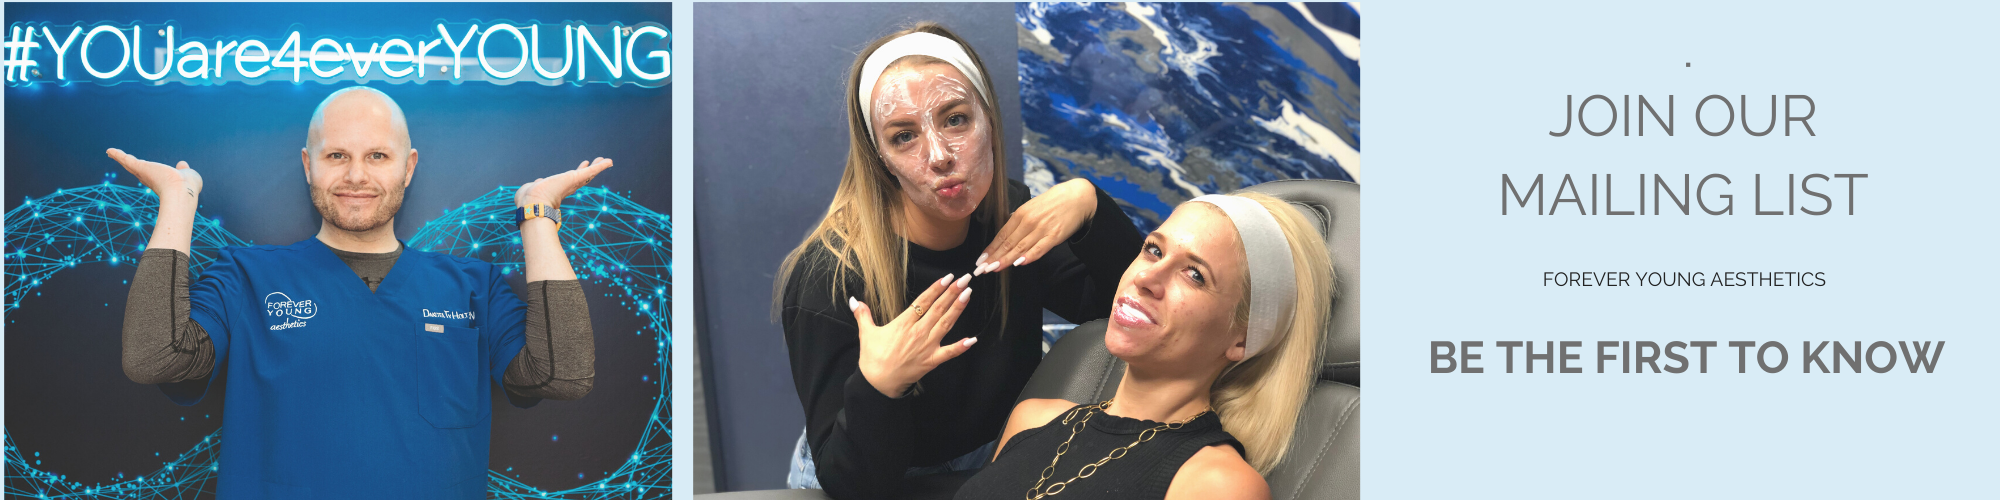 Mailing List for Medspa Forever Young Aesthetics in Tampa FL